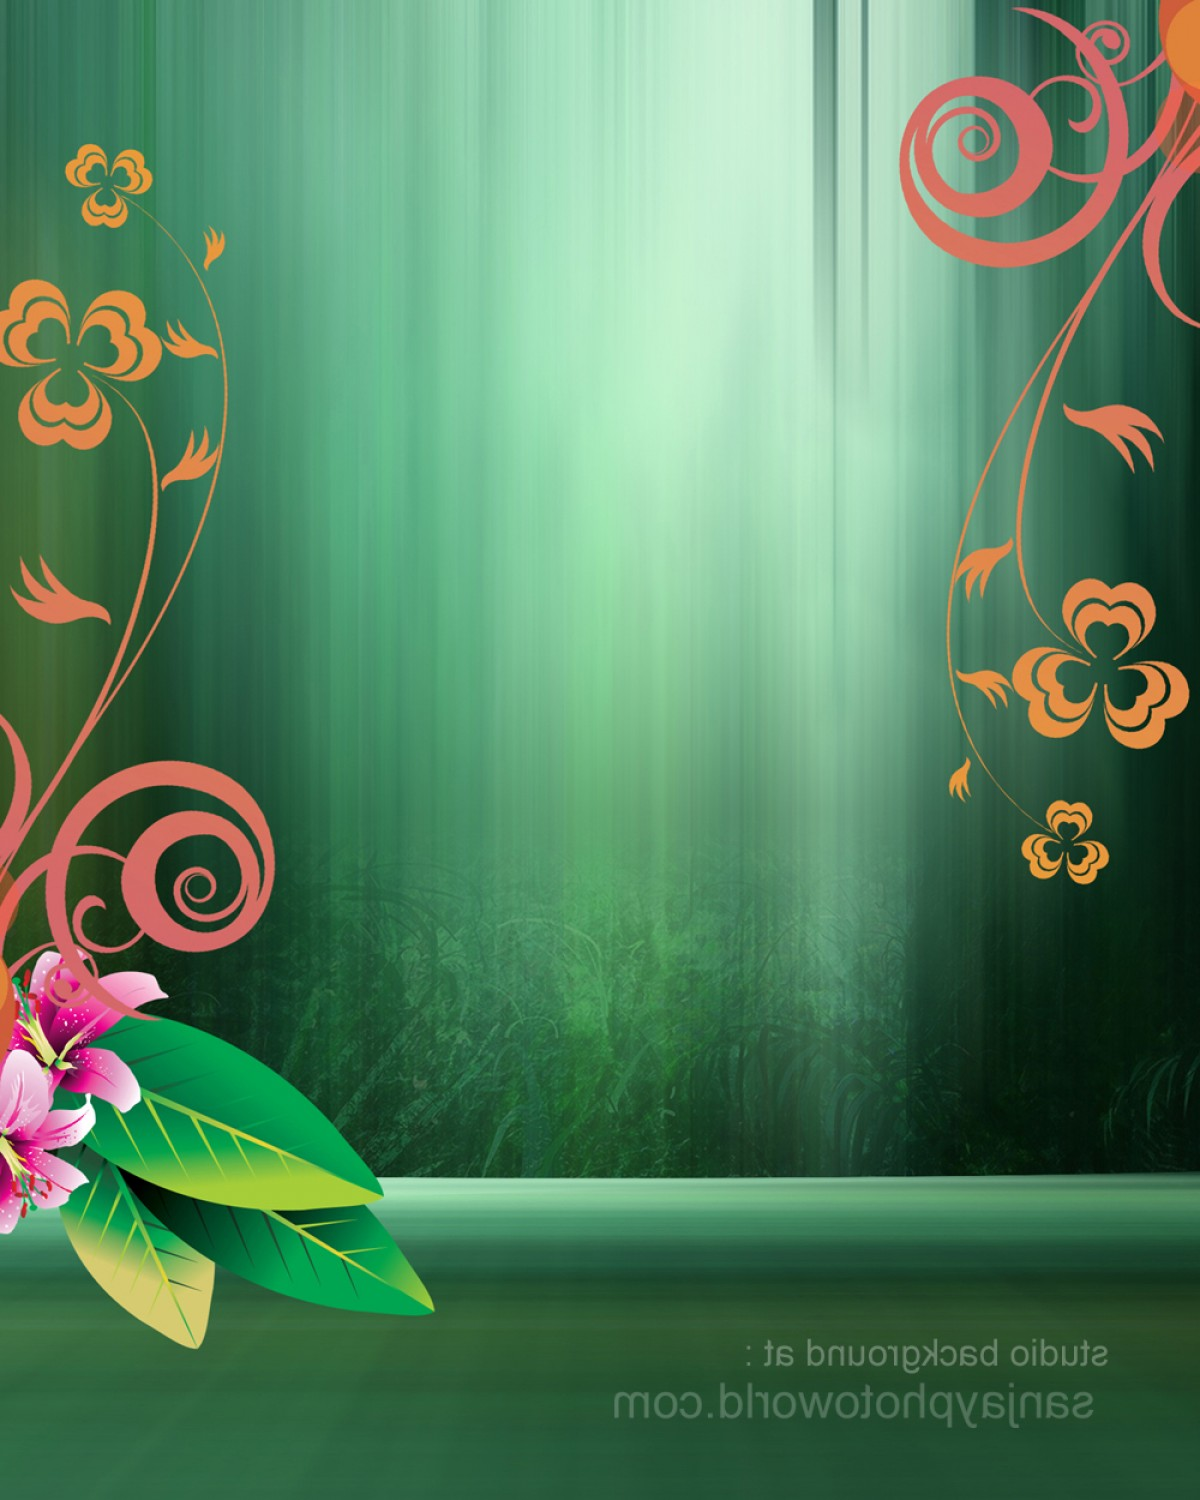 Abstract Vector Backgrounds For Photoshop: Photo Backgrounds For Photoshop Free Download